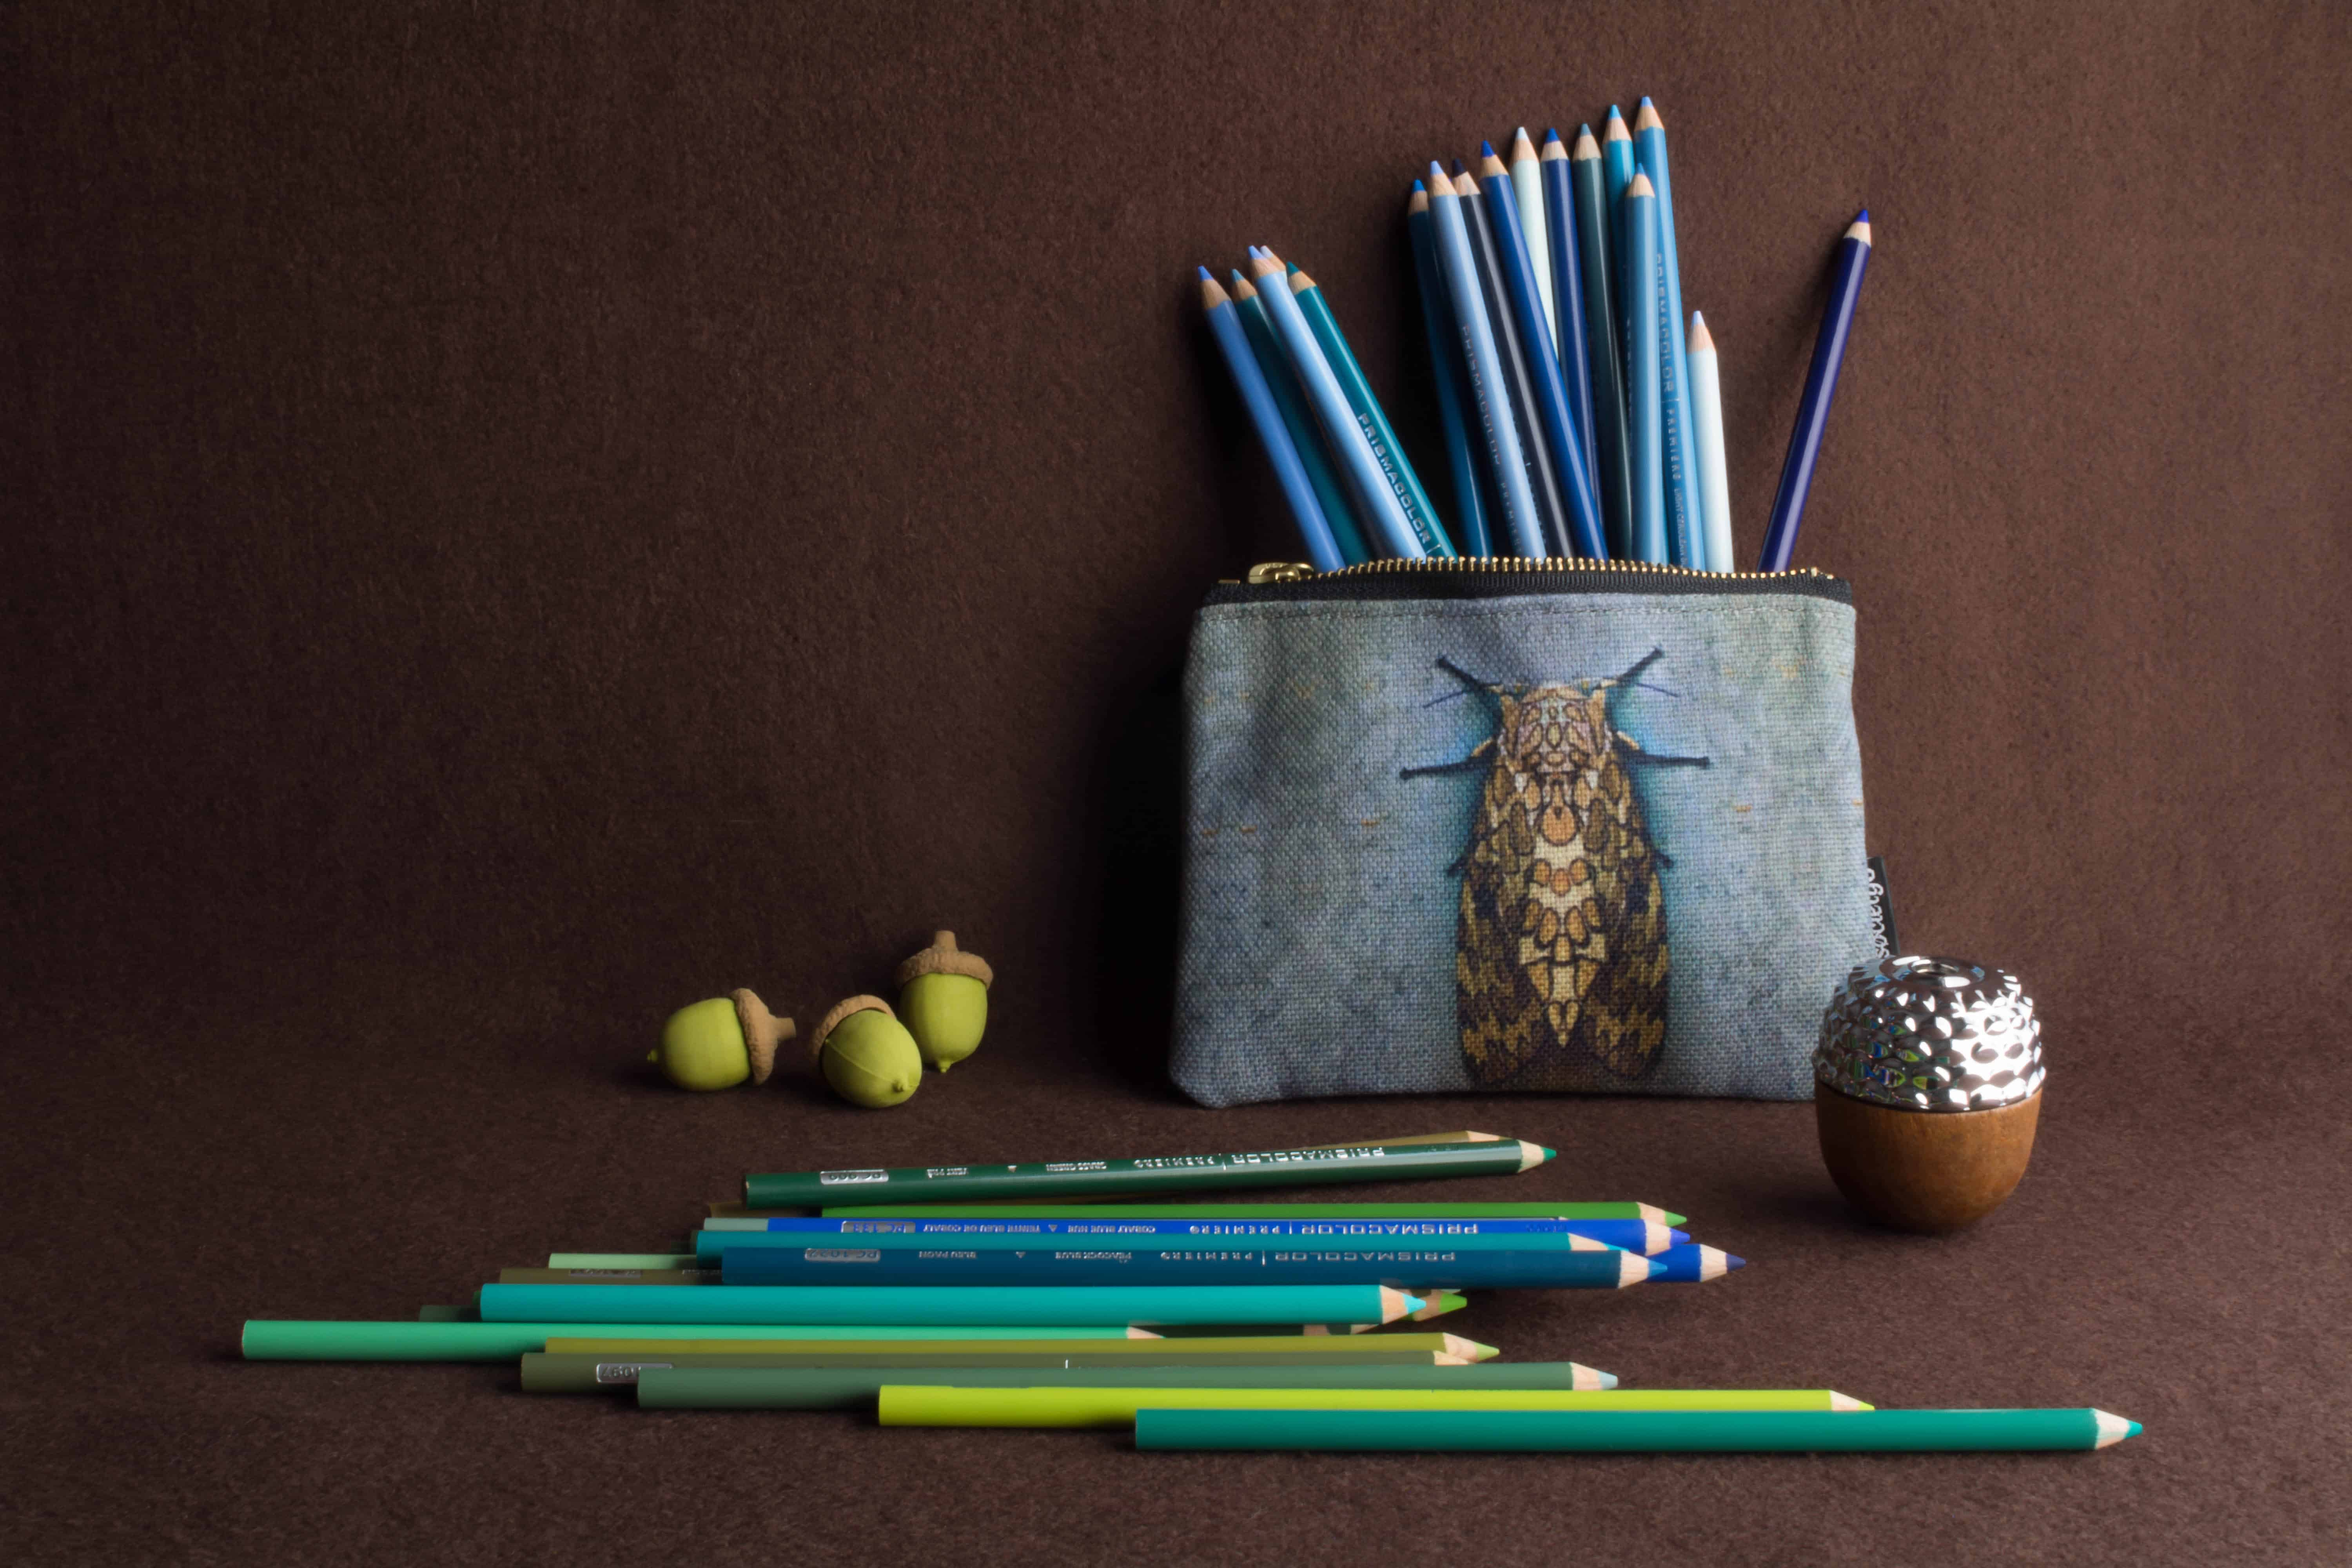 Photo of a still life with Prismacolor Premier Colored pencils, erasers, and acorn-shaped pencil sharpener.